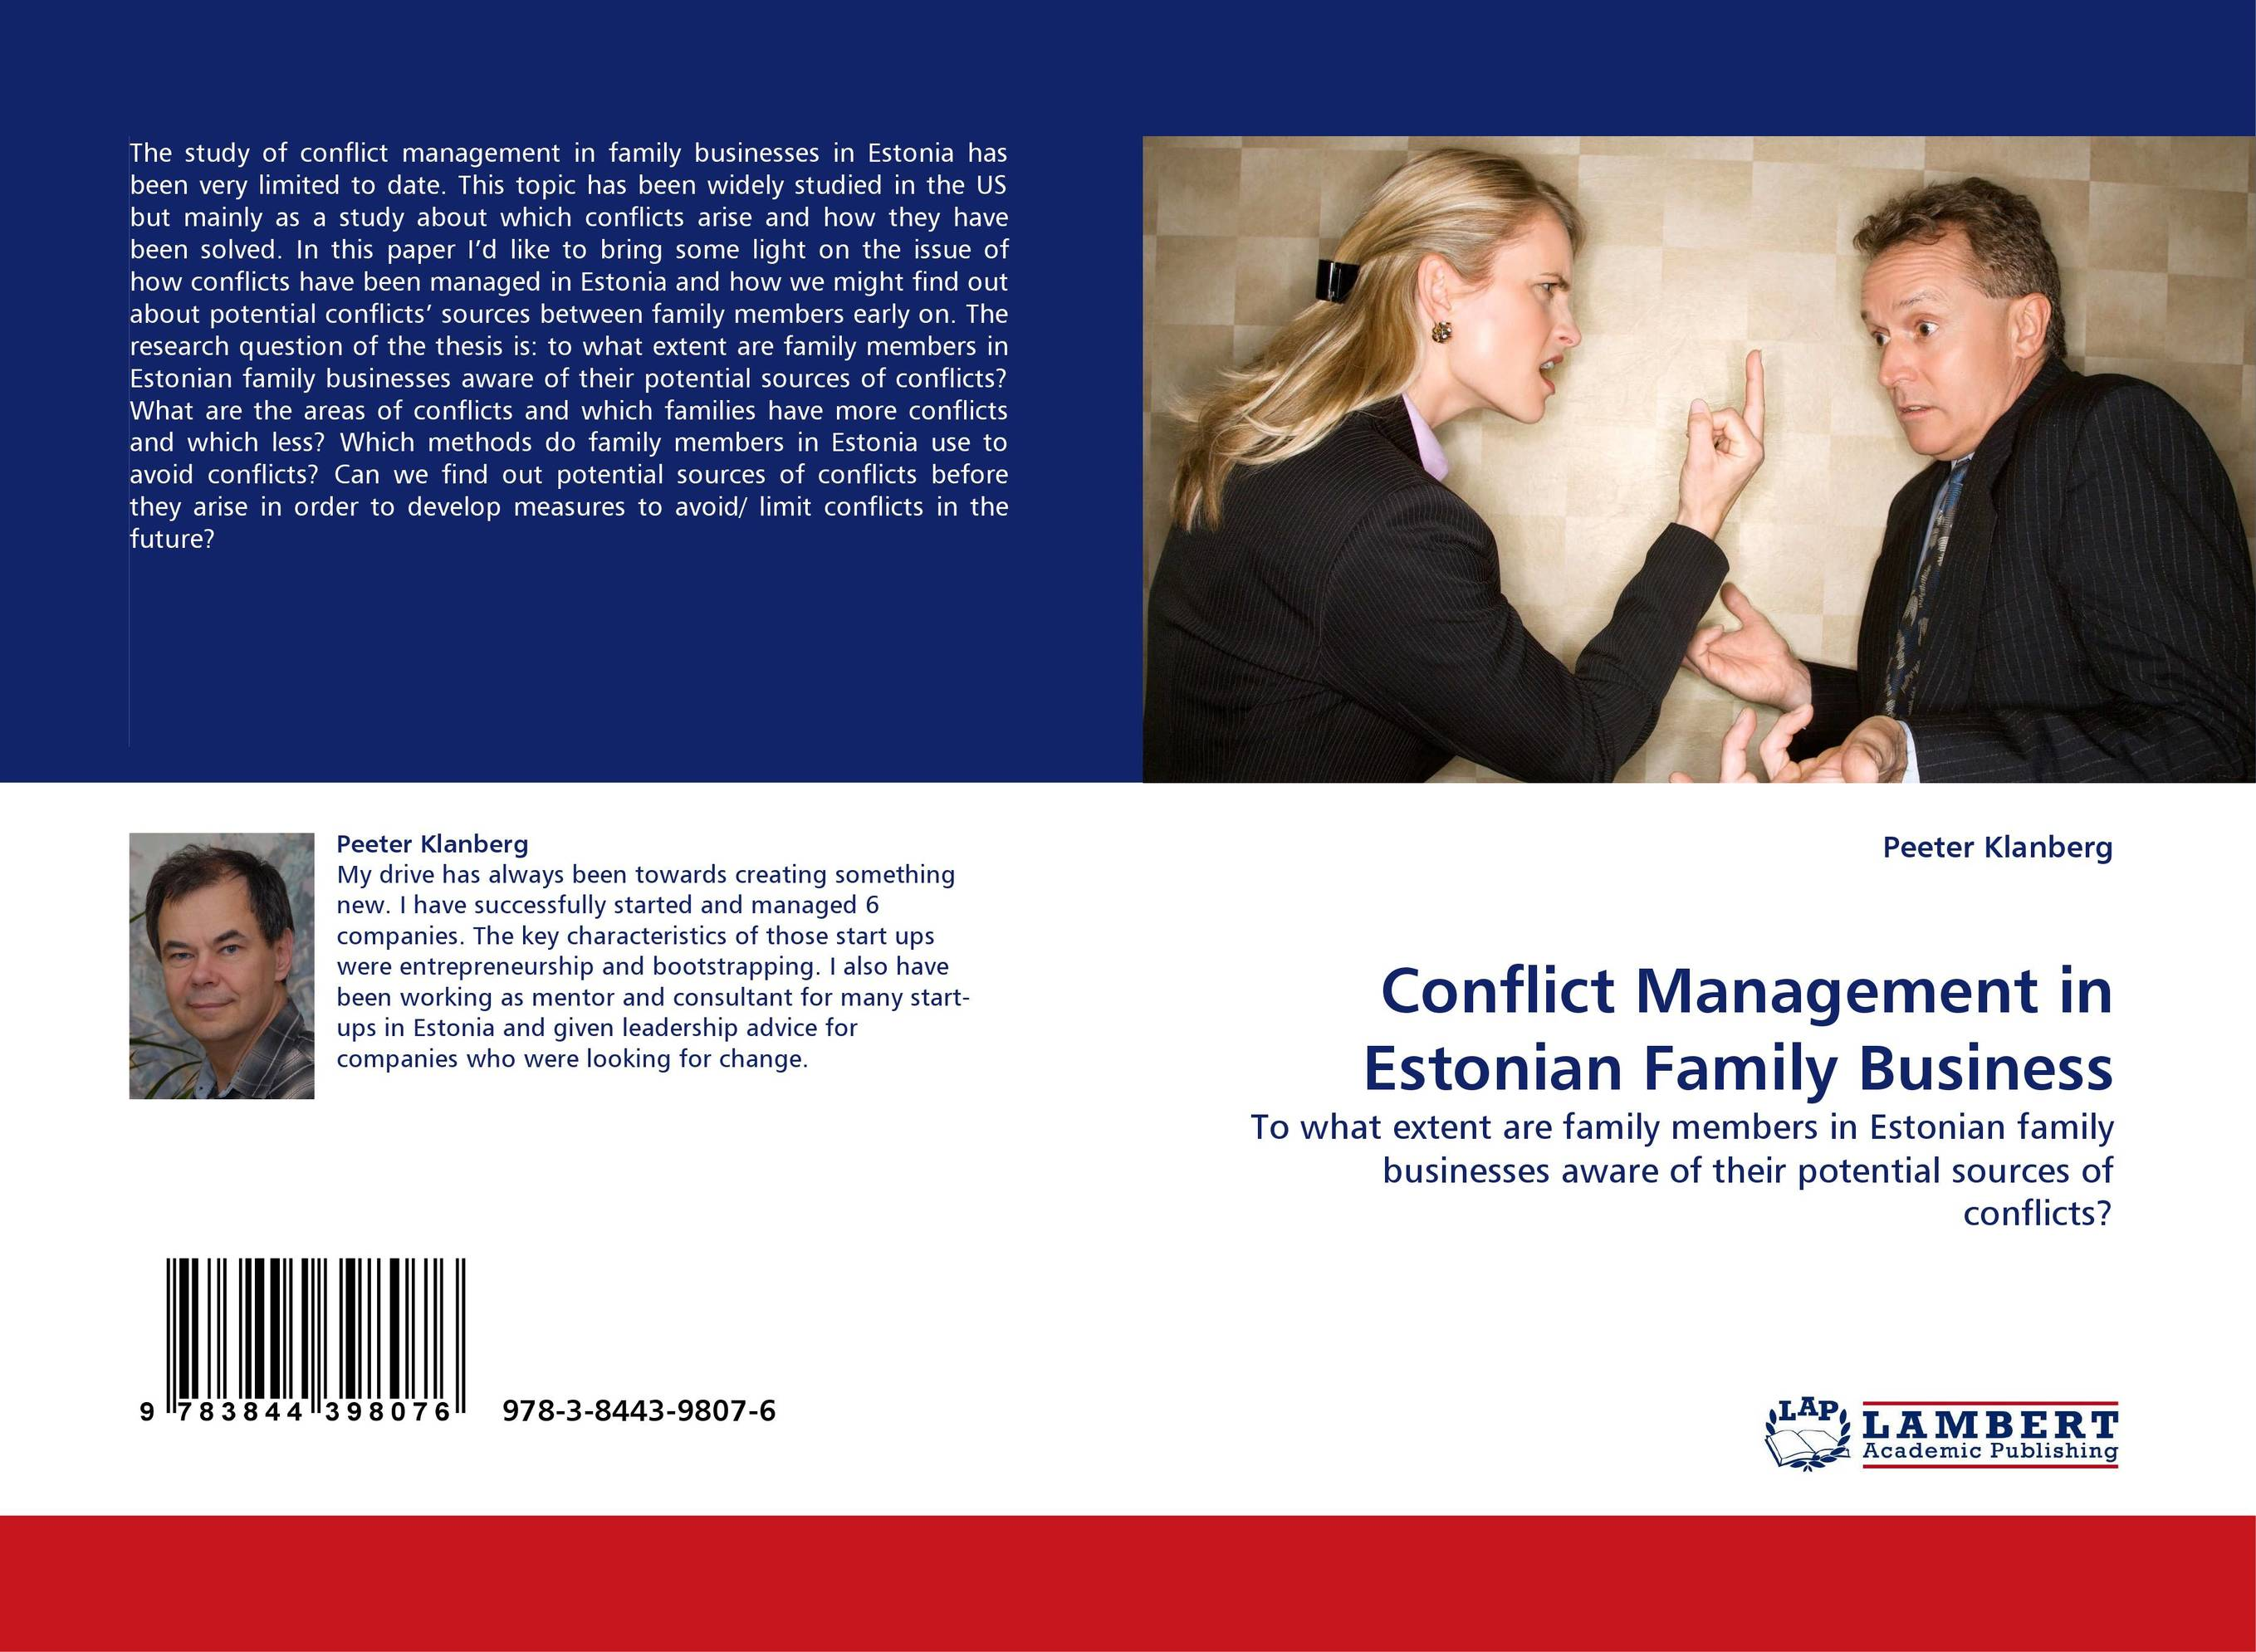 thesis on conflict management Conflict management and conflict resolution conflict management and resolution through site-based management school-based management (sbm), or decentralized management, is fast growing in popularity in many of the us school districts as this is seen as an efficient way to resolve and manage conflicts.